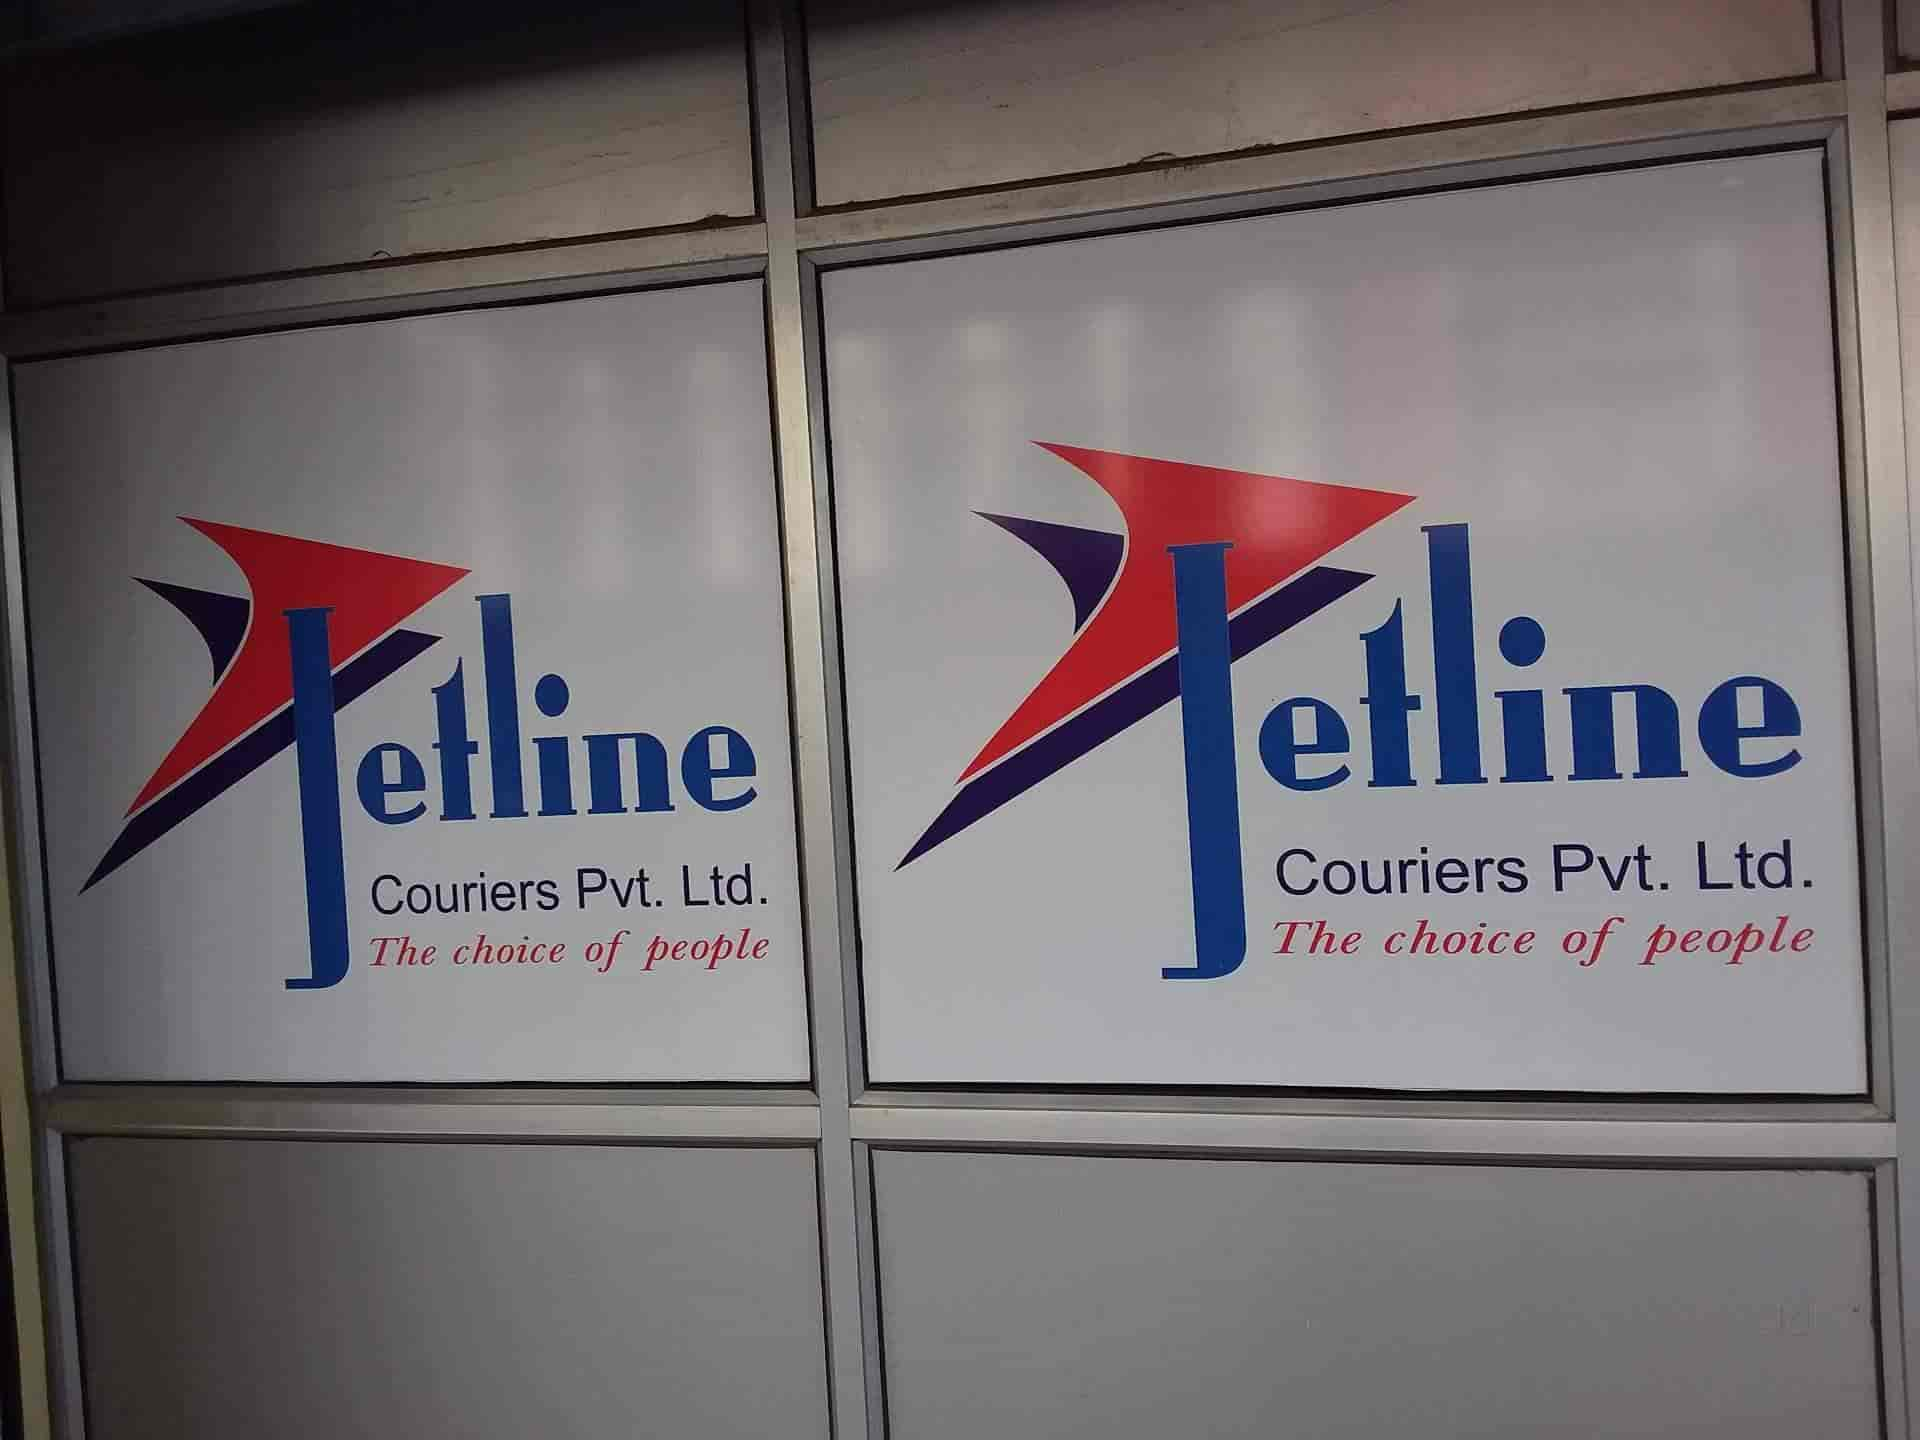 Jetline courier pvtd south gandhi maidan courier services in jetline courier pvtd south gandhi maidan courier services in patna justdial reheart Image collections